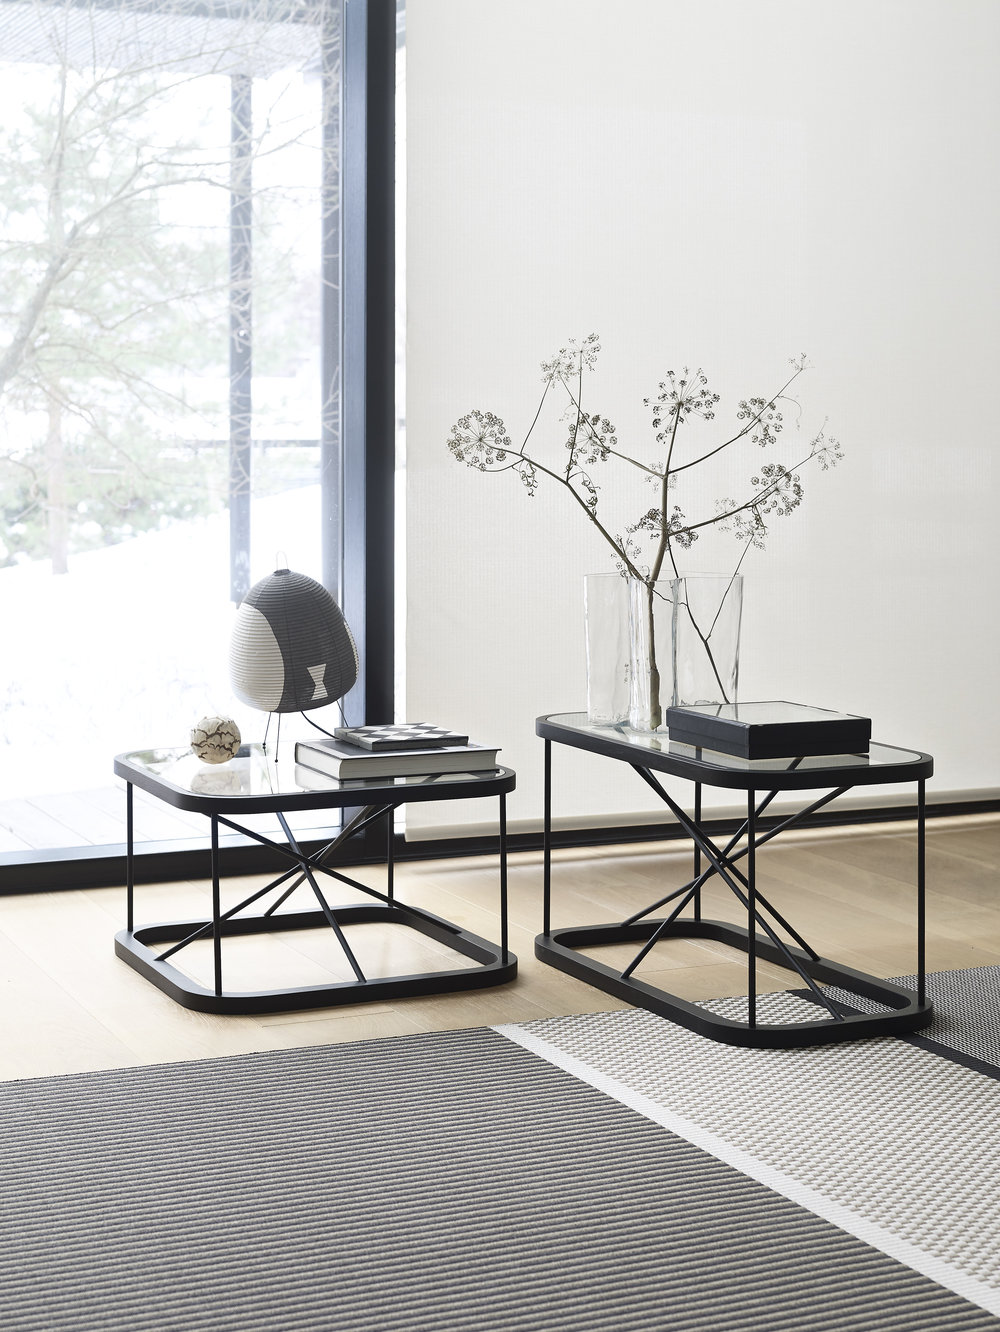 Stained black Twiggy oak tables, size 66,5x66,5x38,5 cm and 44x88x45,5 cm, together with San Francisco paper yarn carpet col. 1433215 nutria-stone.